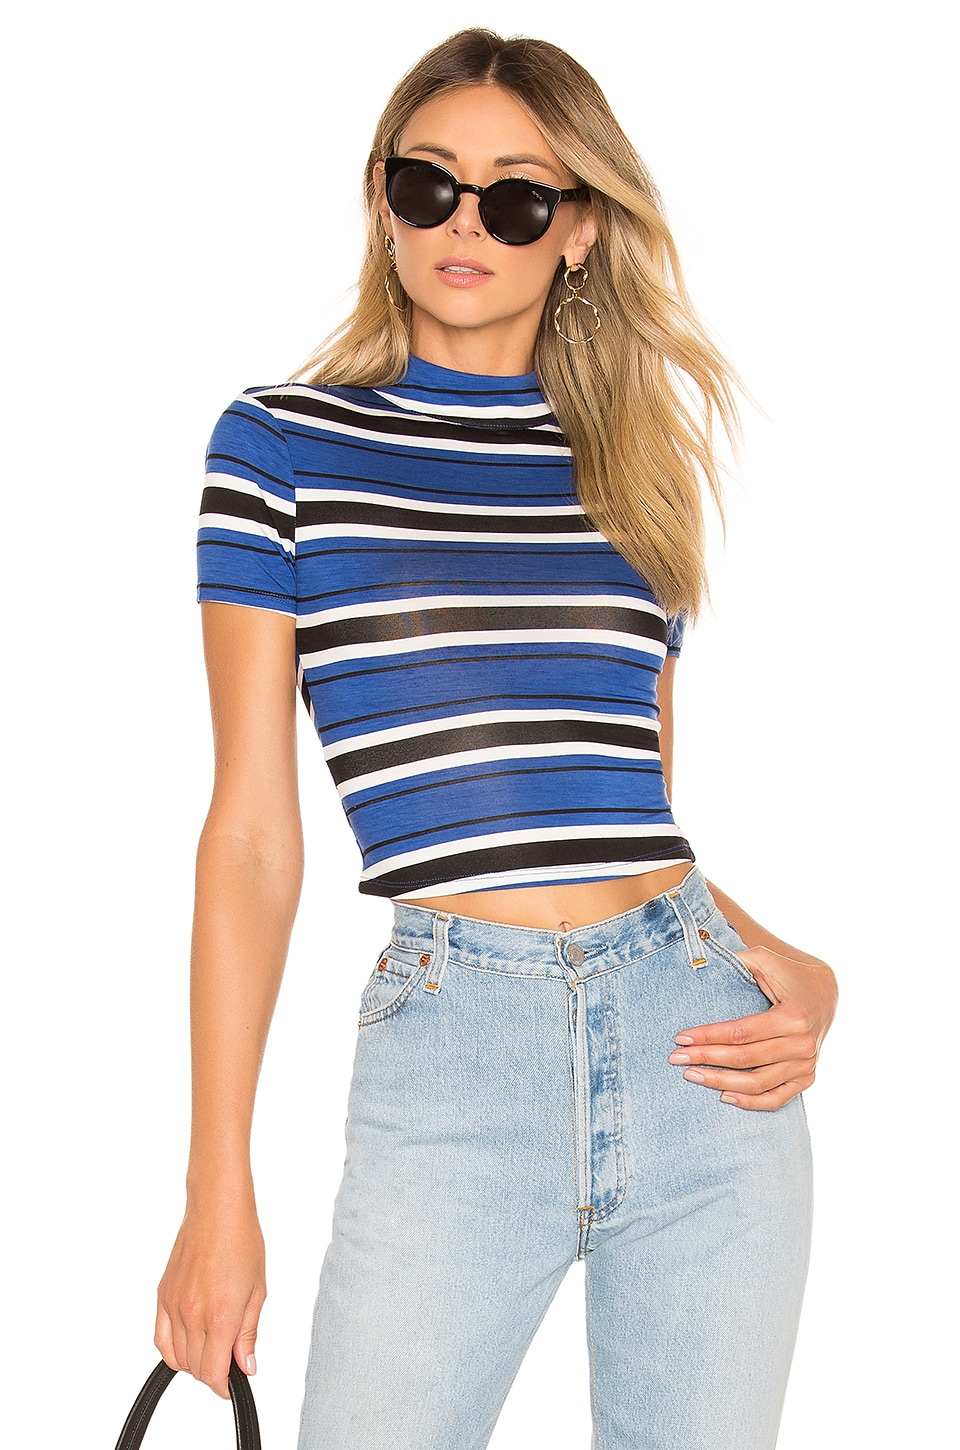 House of Harlow 1960 X REVOLVE Remington Tee in Lapis Stripe